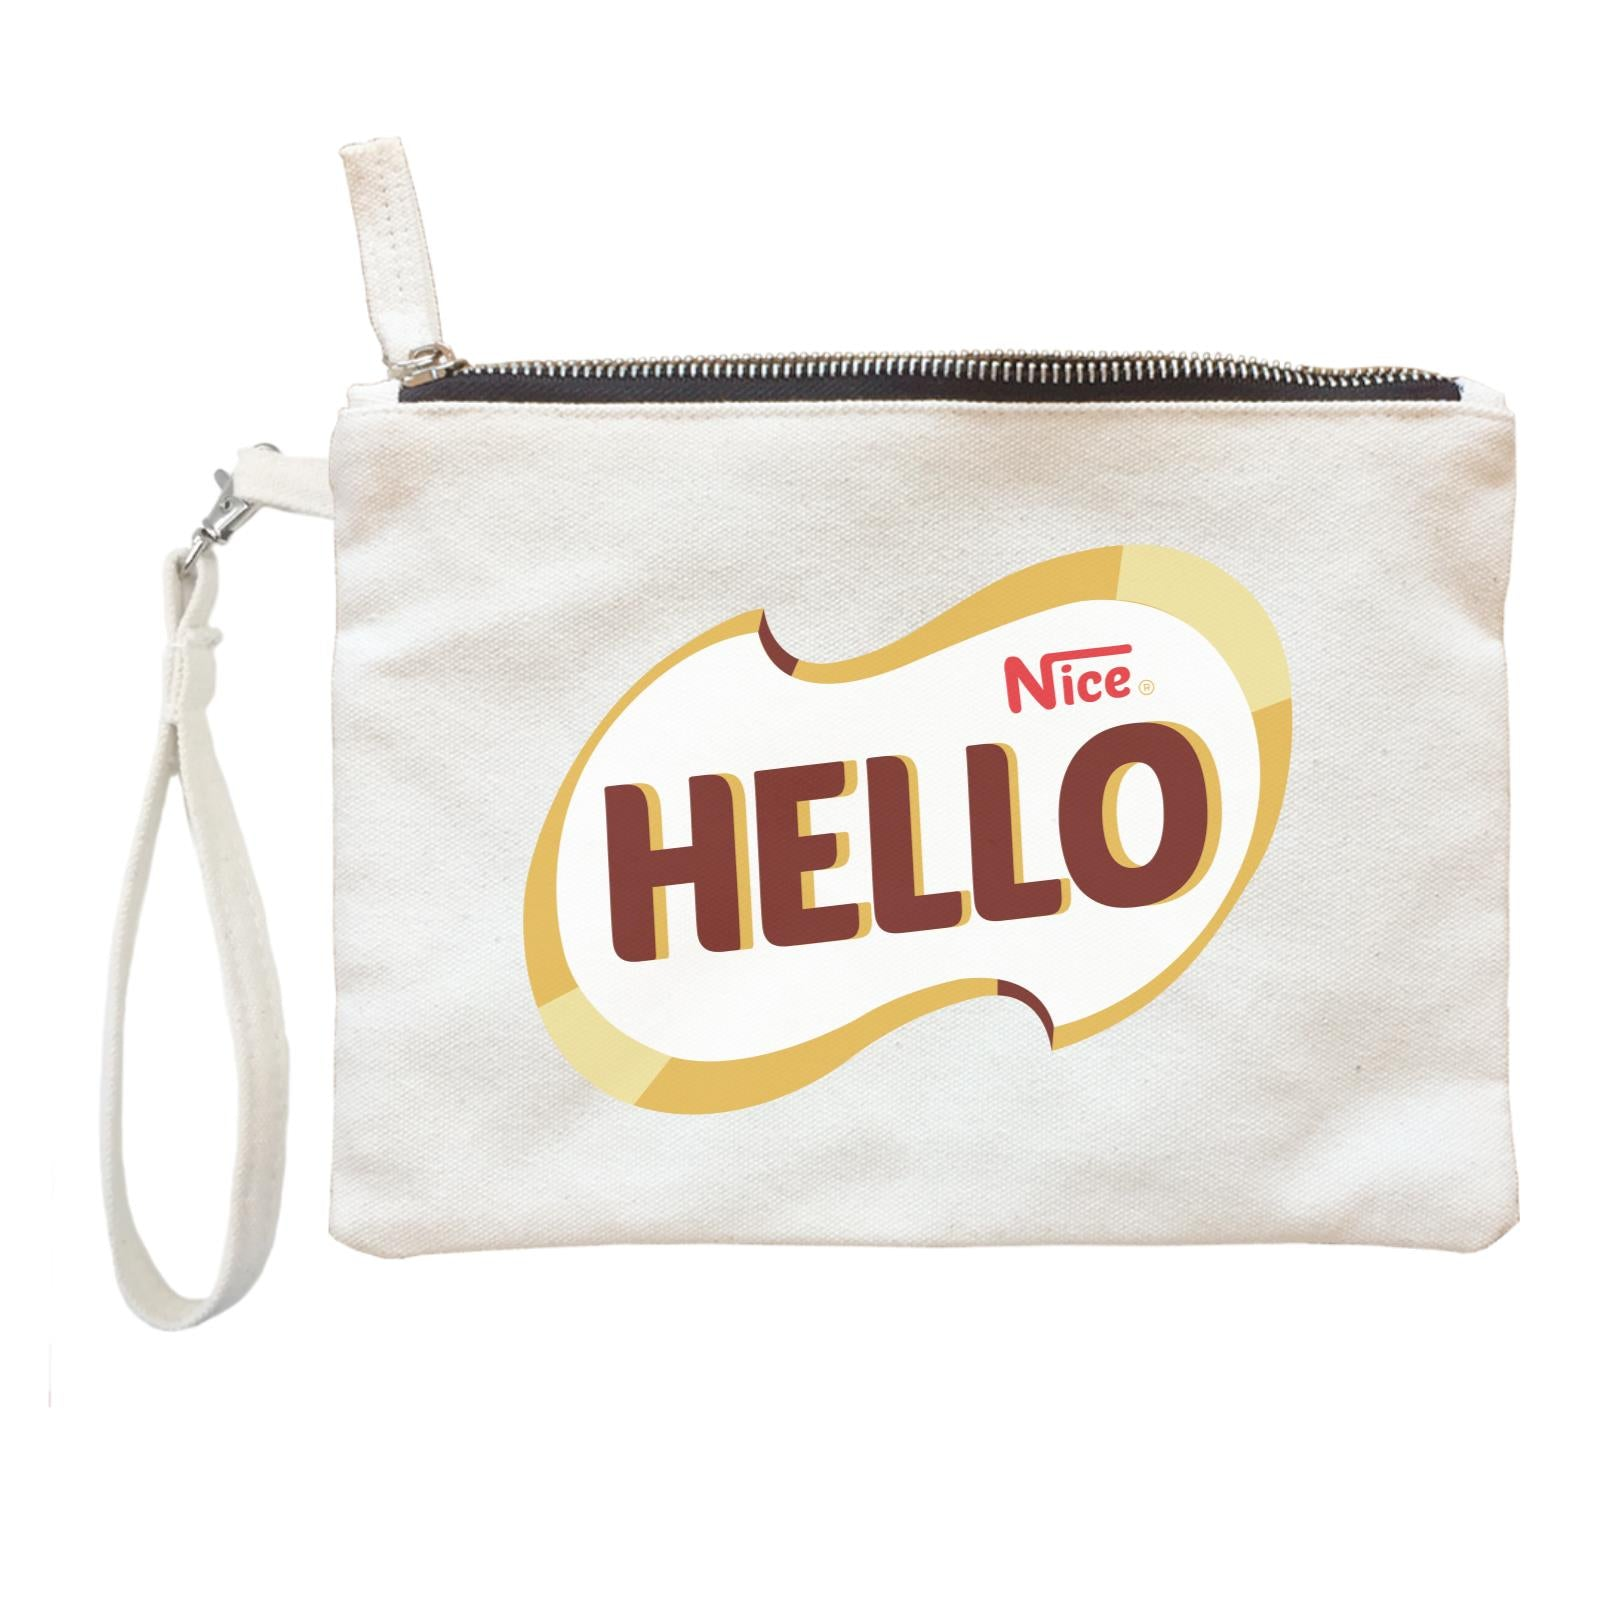 Slang Statement Hello Nice Accessories Zipper Pouch with Handle